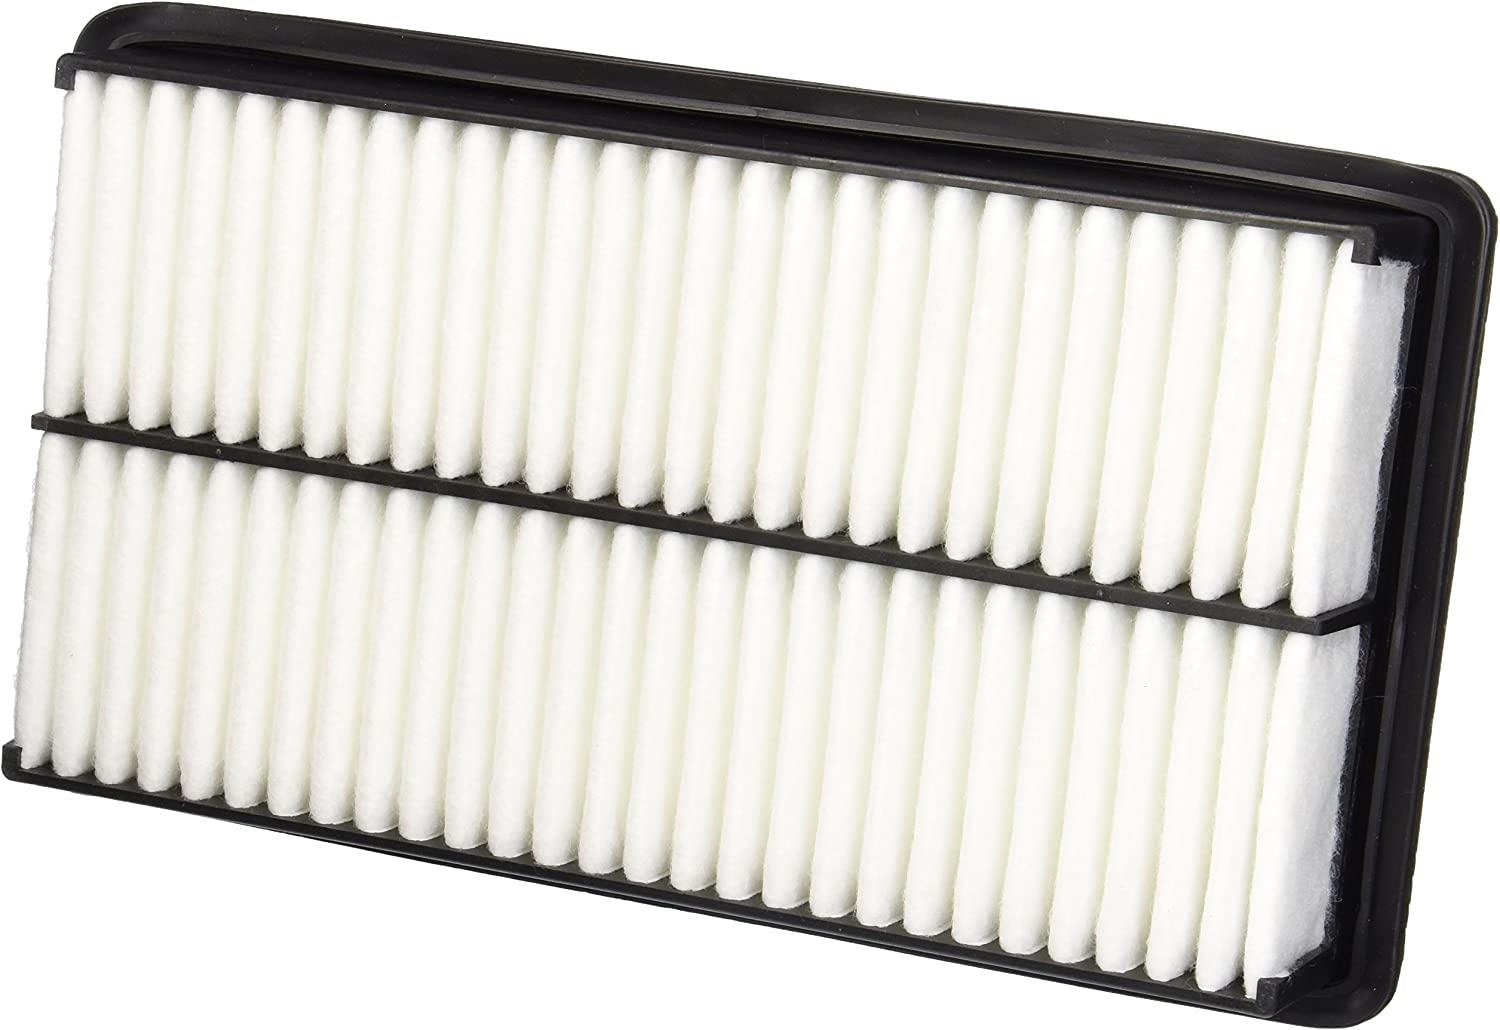 Intake Flow Filters co Purolator ONE Engine Air Filter for 2003-2008 Mazda 6